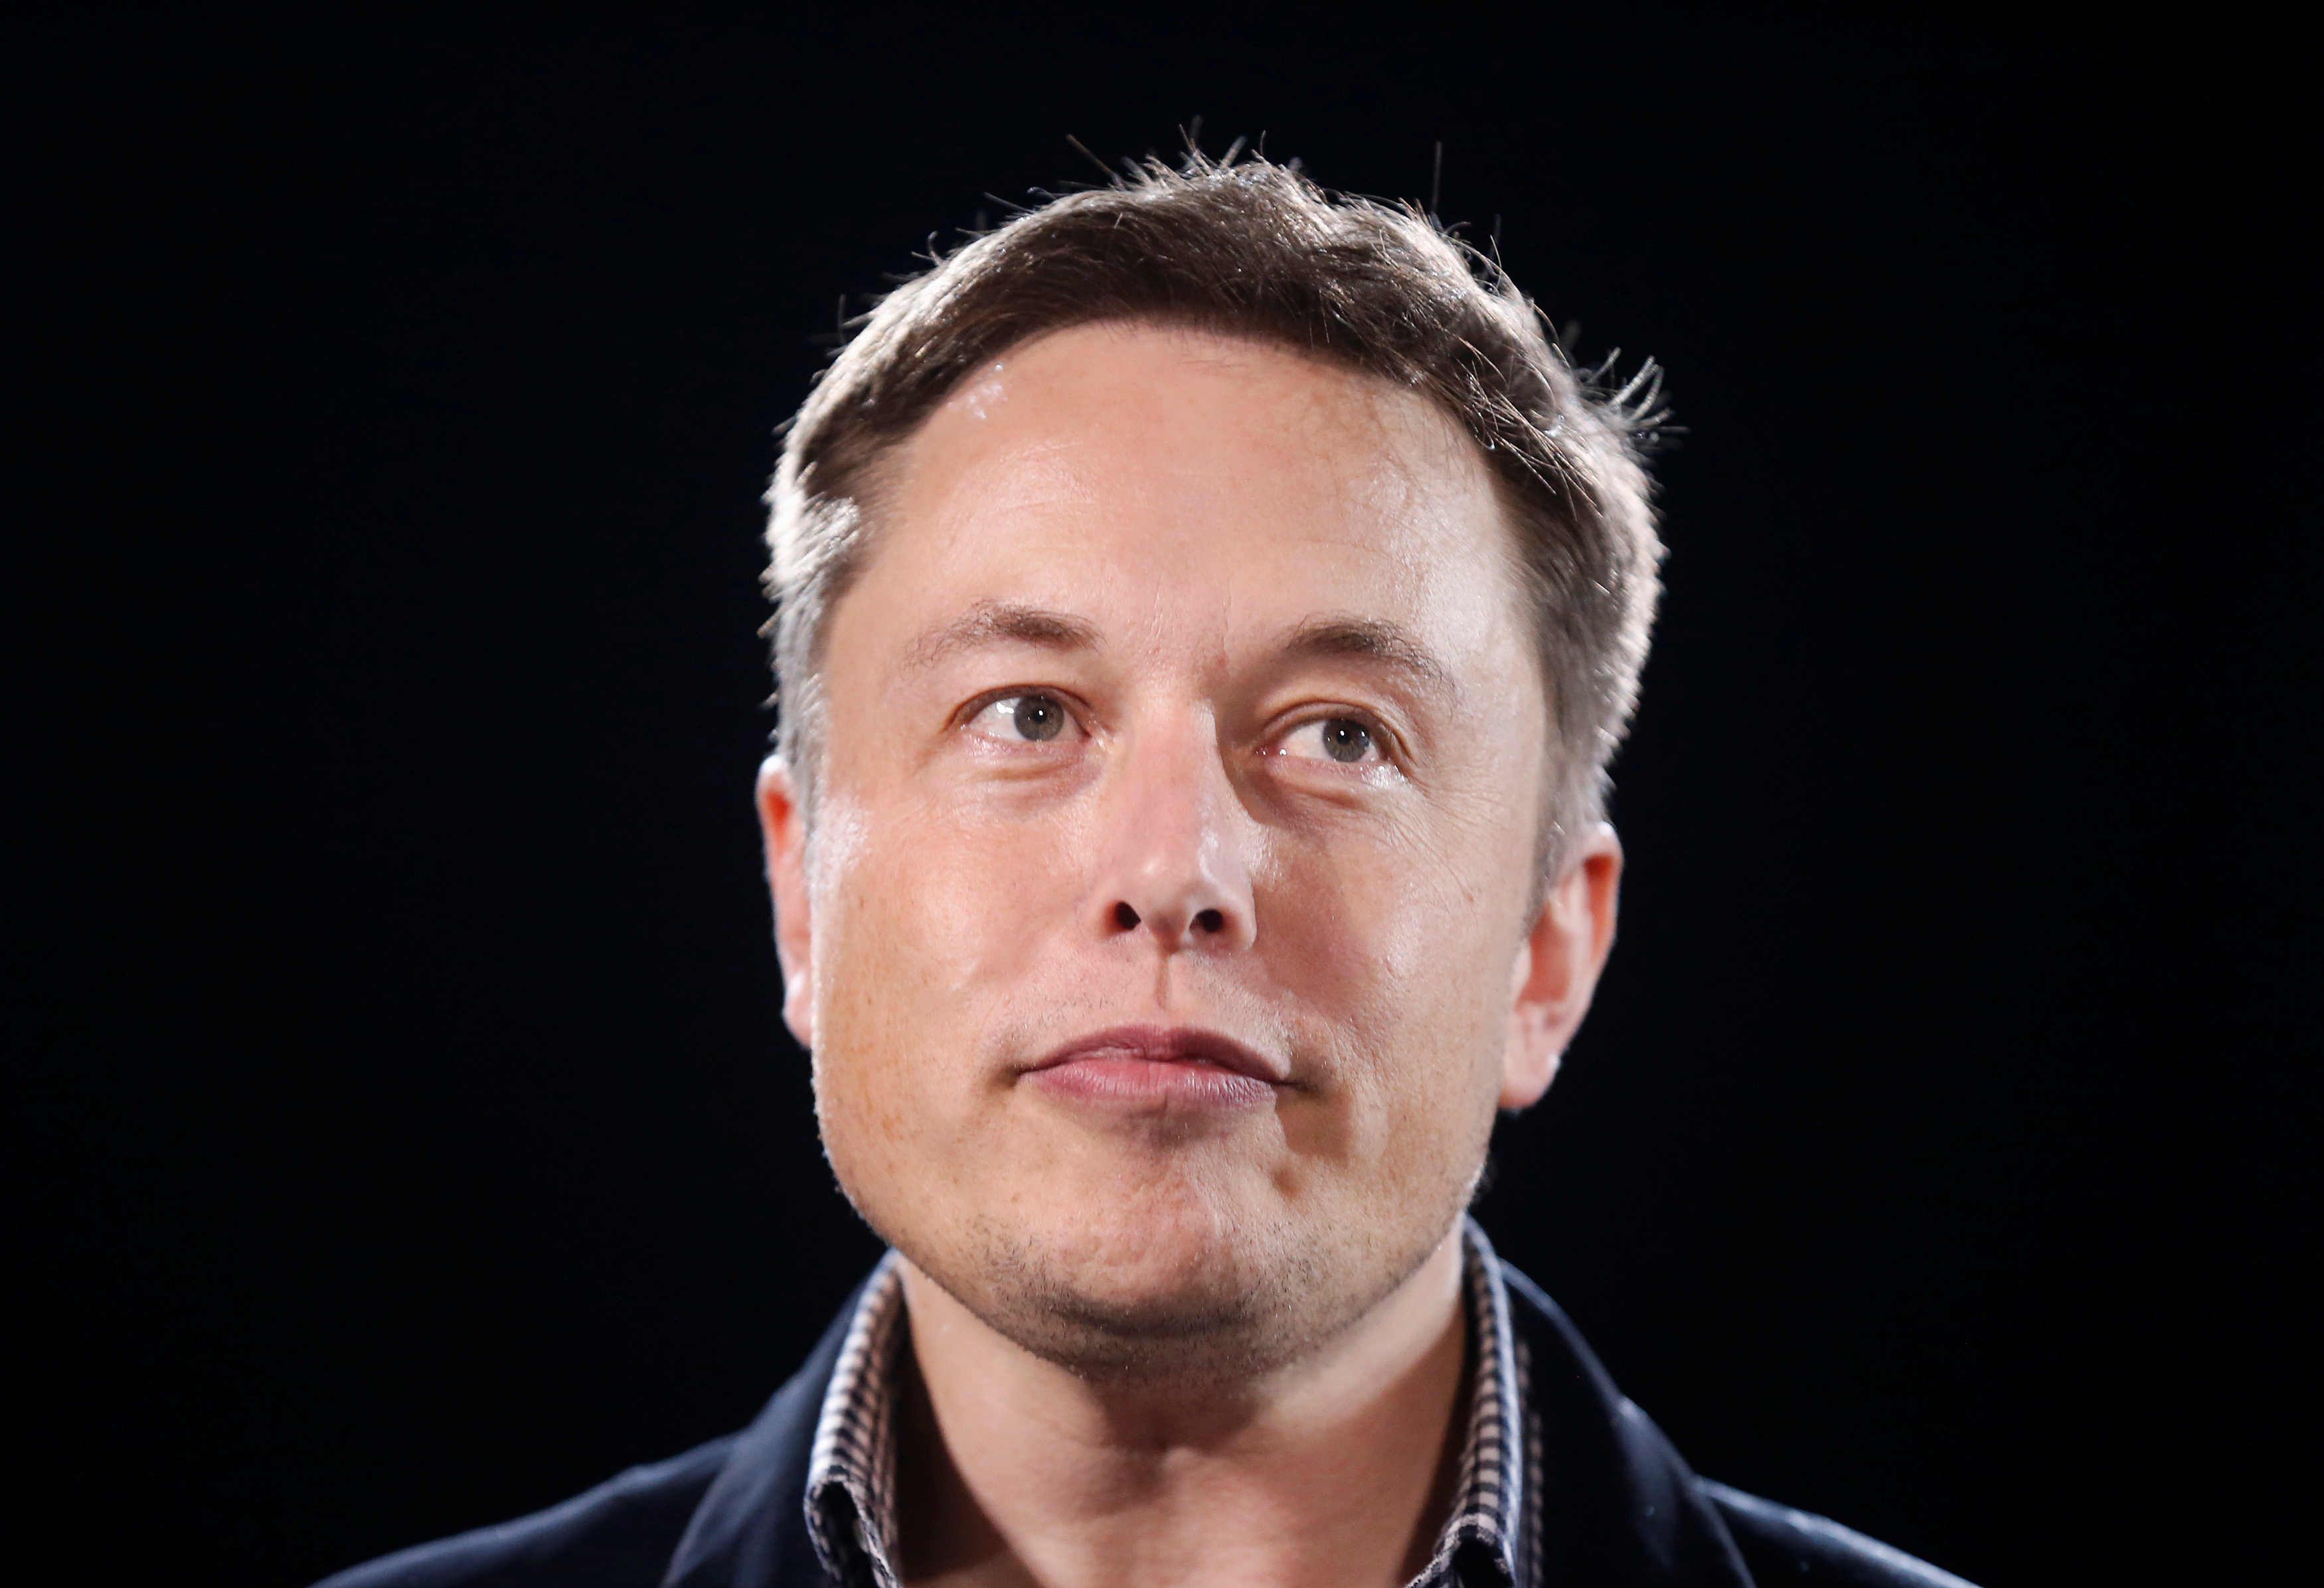 Elon Musk Could Become World's First Trillionaire Thanks to SpaceX